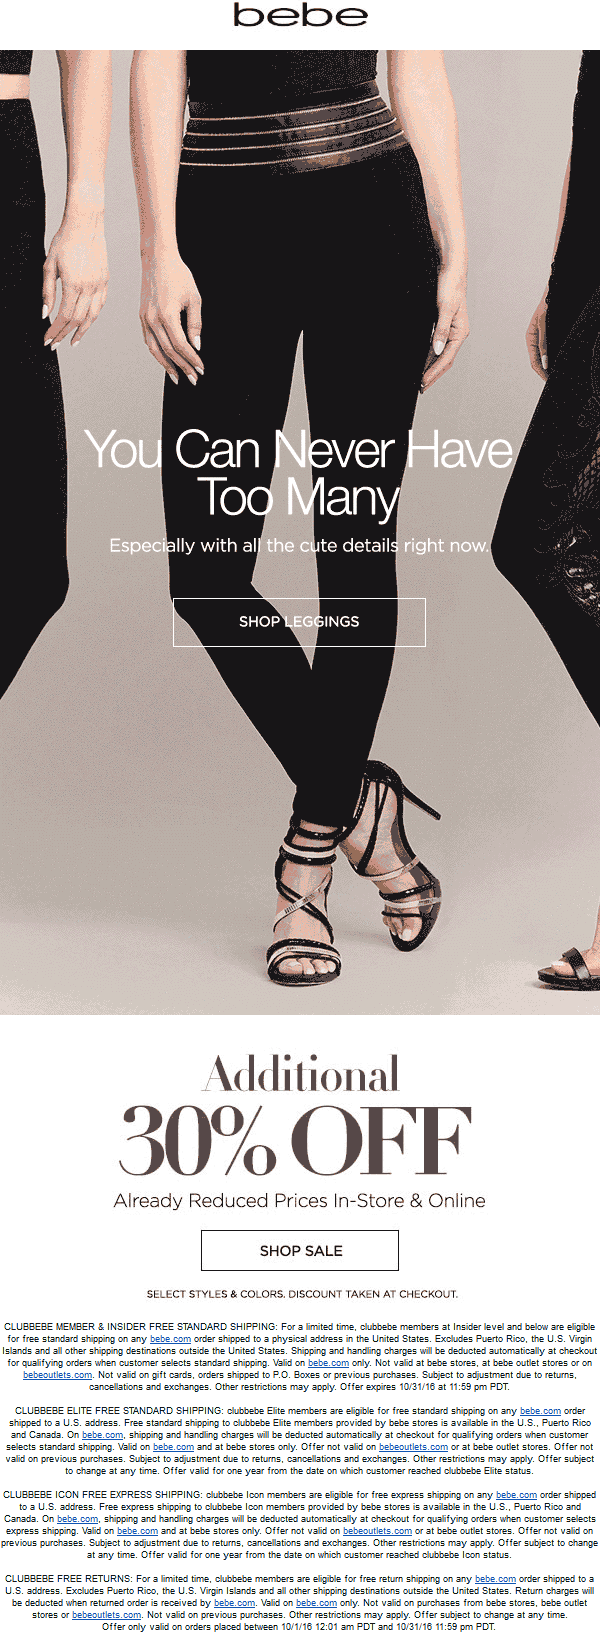 Bebe Coupon May 2017 Extra 30% off sale items at bebe, ditto online